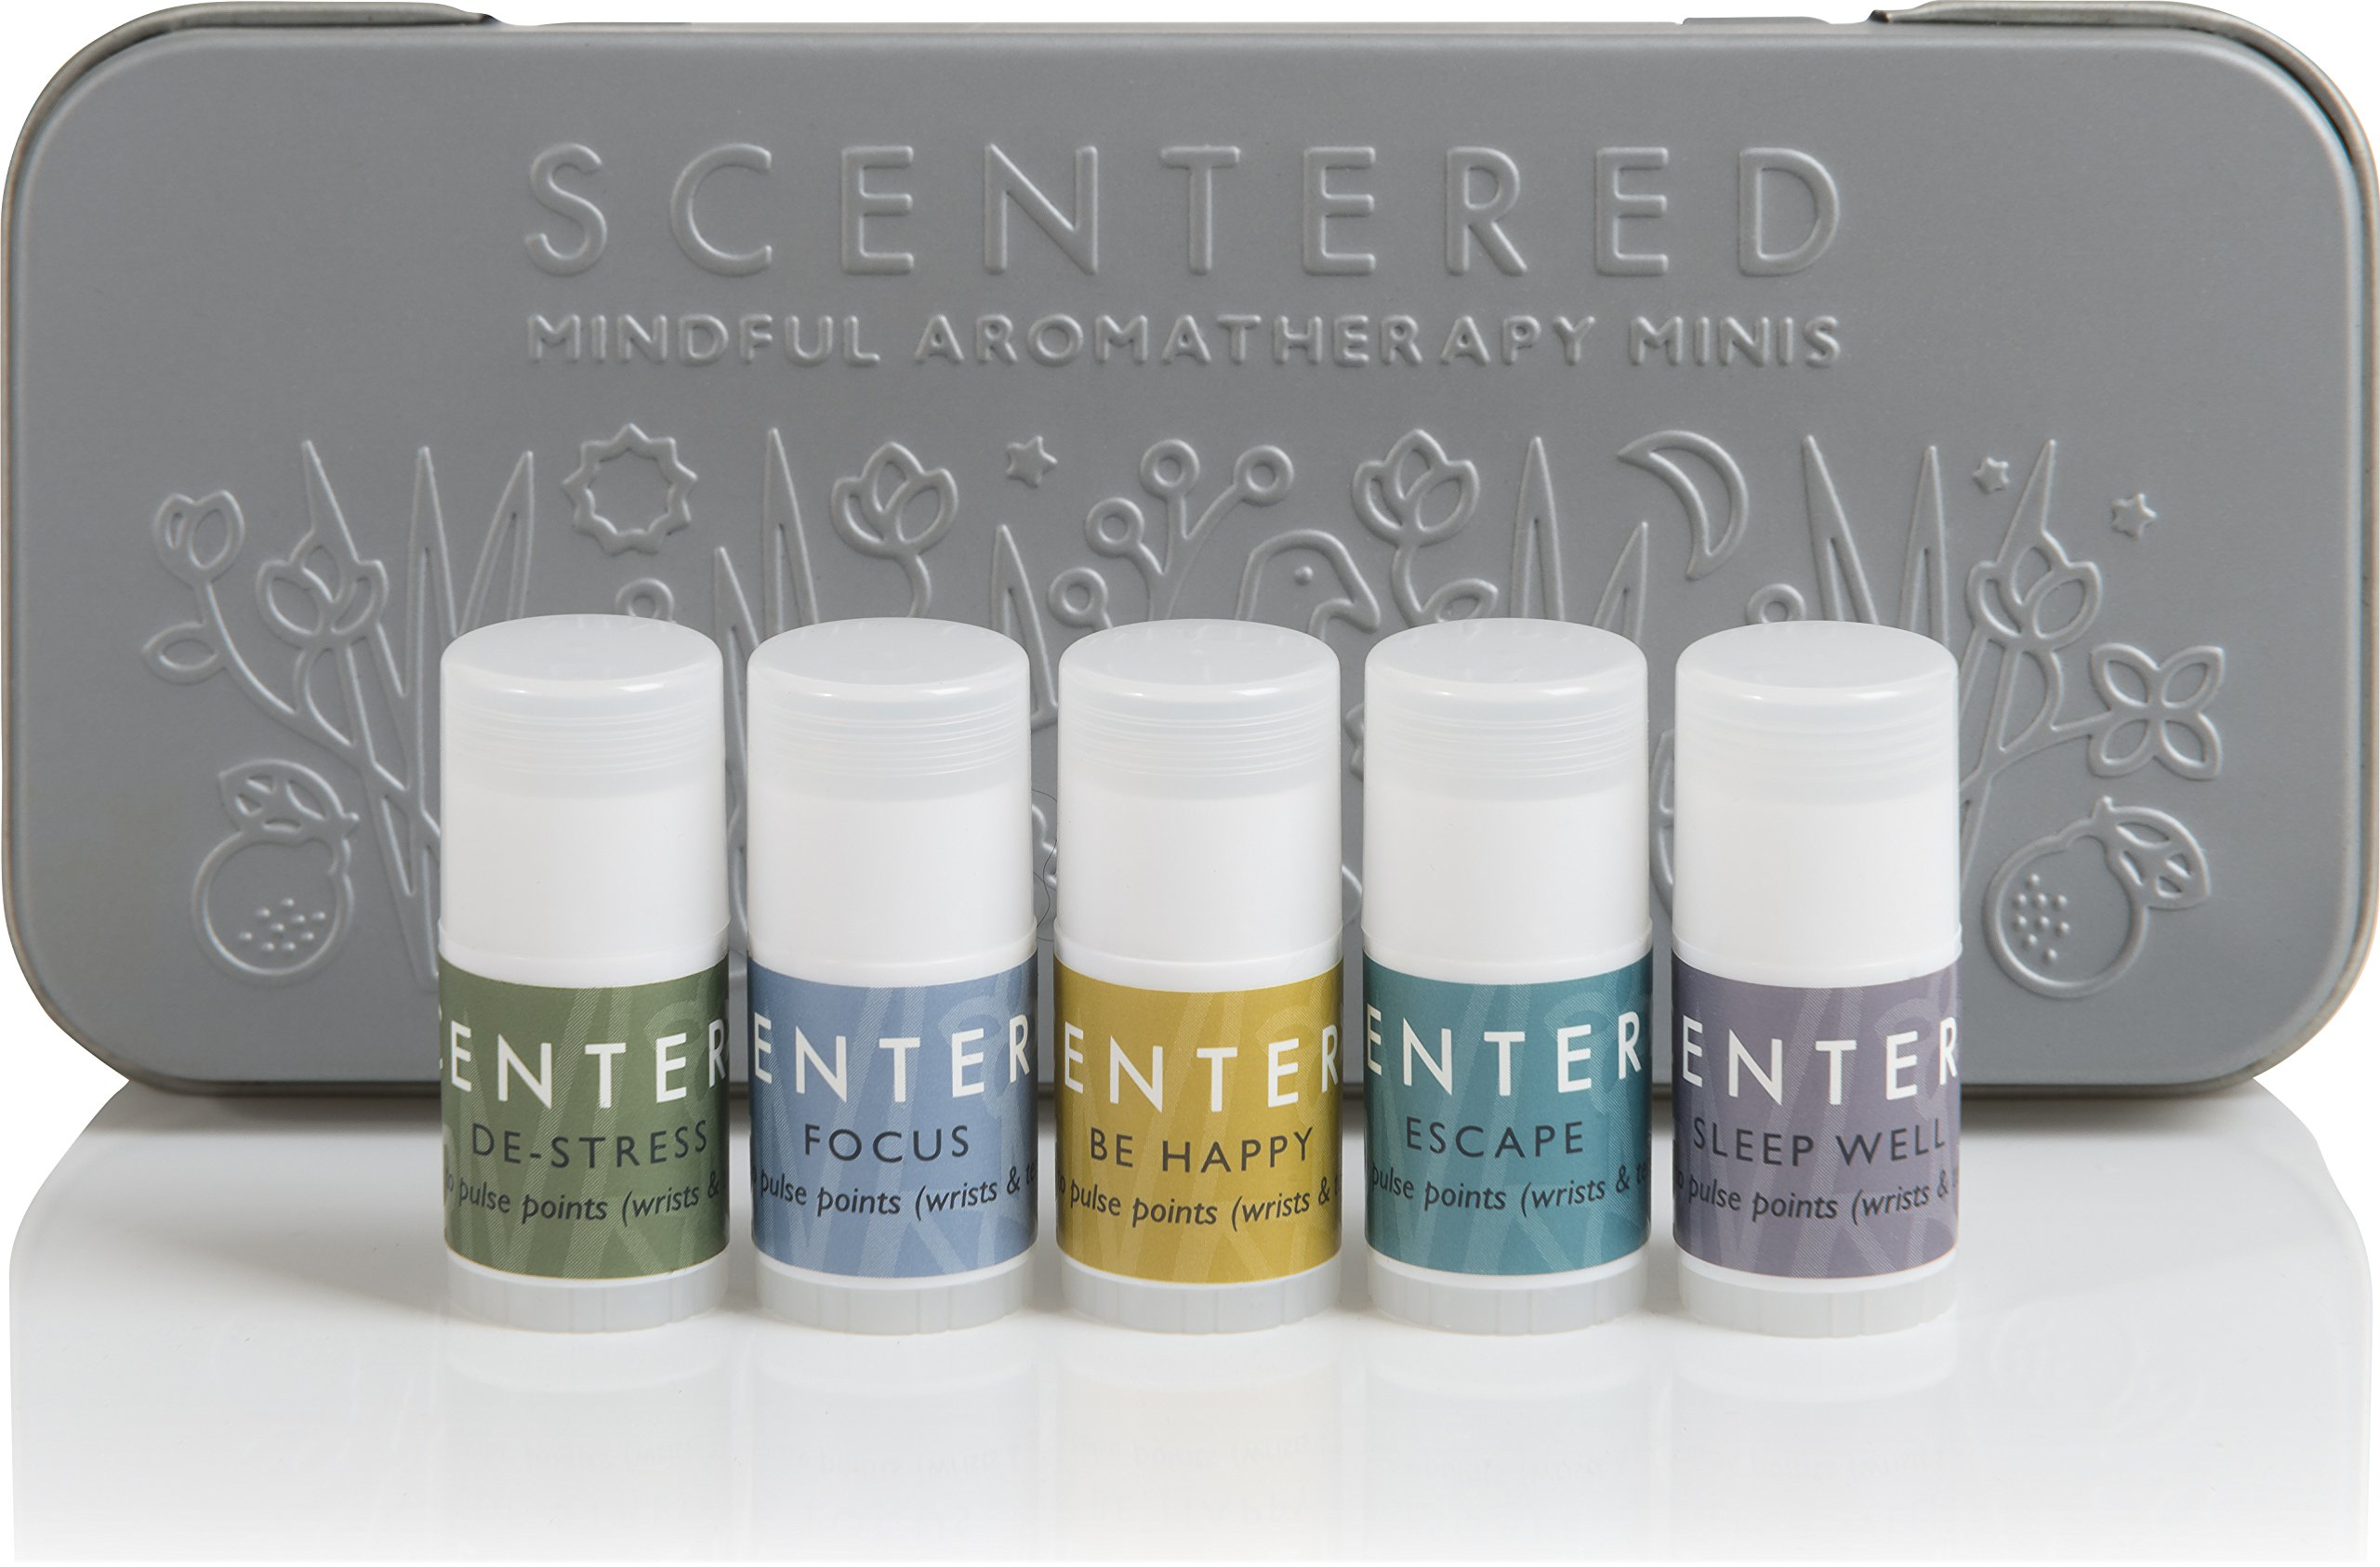 Scentered Portable Aromatherapy Balms Gift Set | Pocket Size | Sleep Well, Love, De Stress, Be Happy, Escape | Set of 5 Wellbeing Ritual Mindful Minis by Scentered